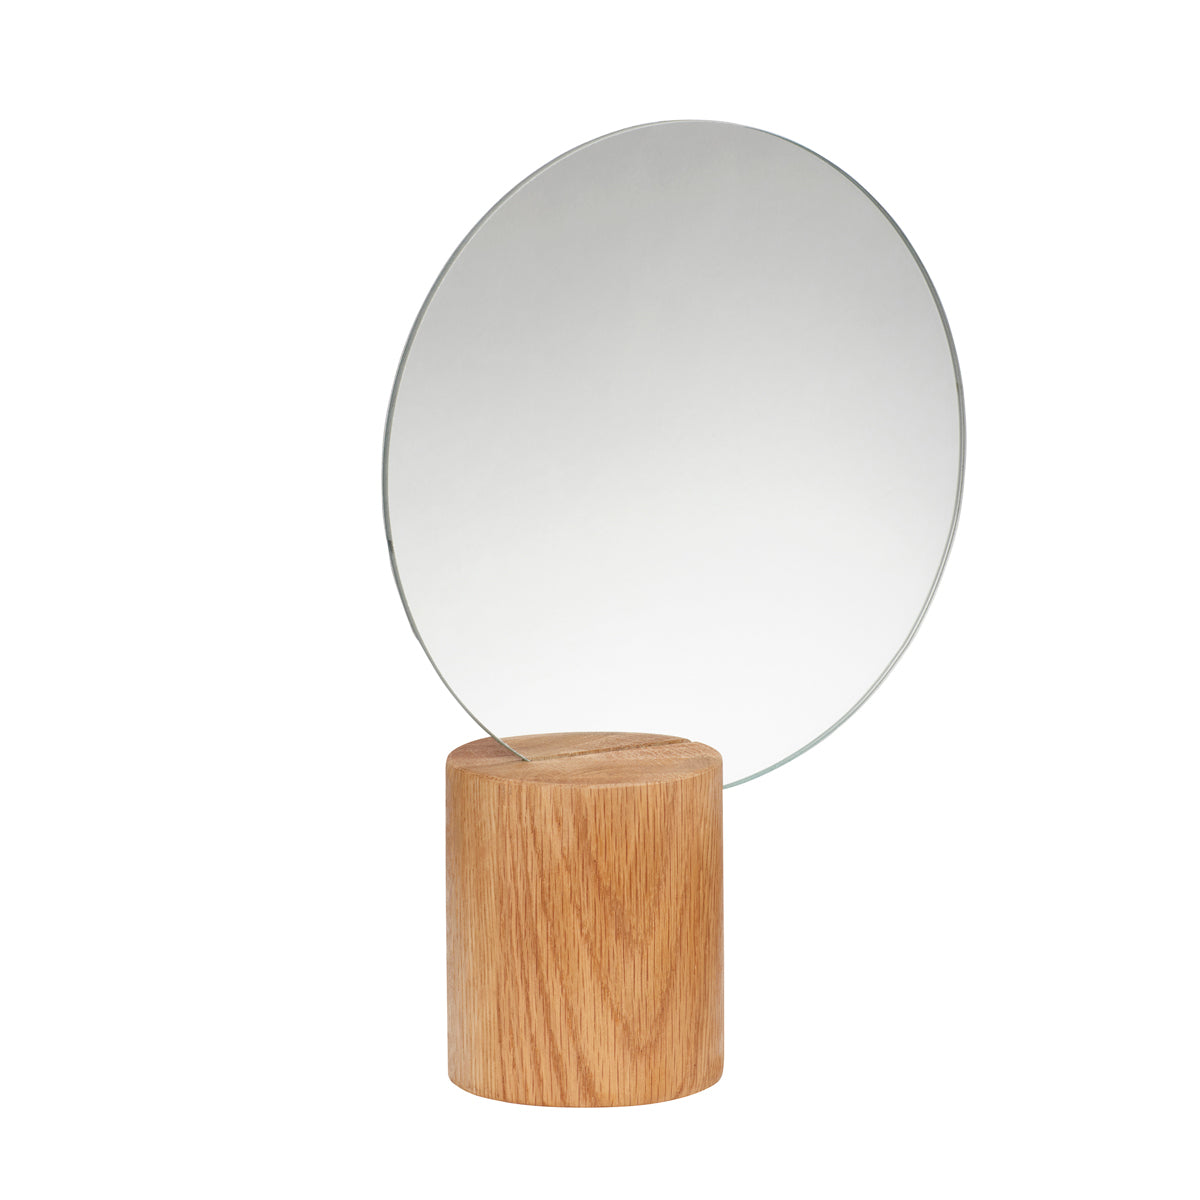 Table mirror, wood, nature, round